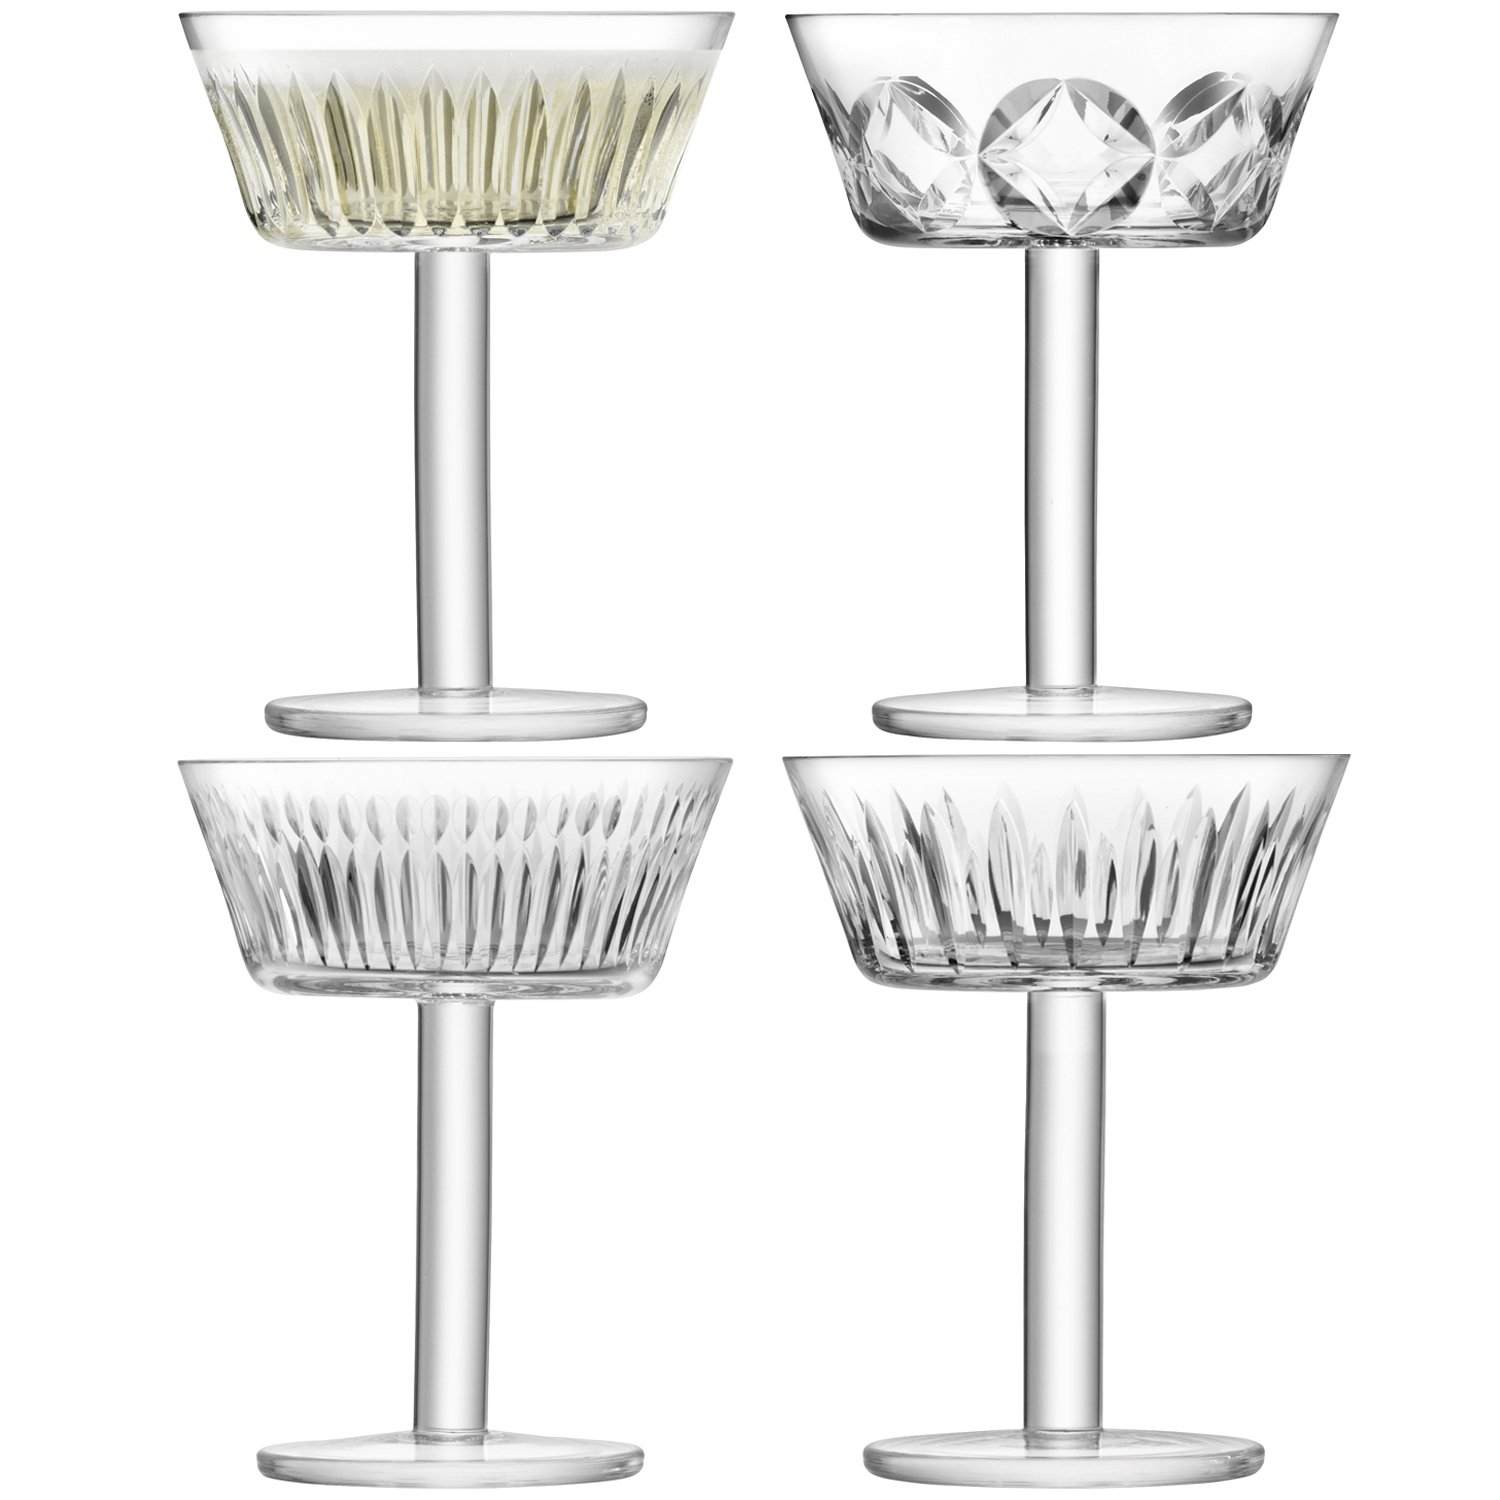 LSA International g1405-08-194 Tatra Champagne/Cocktail Glass, Clear